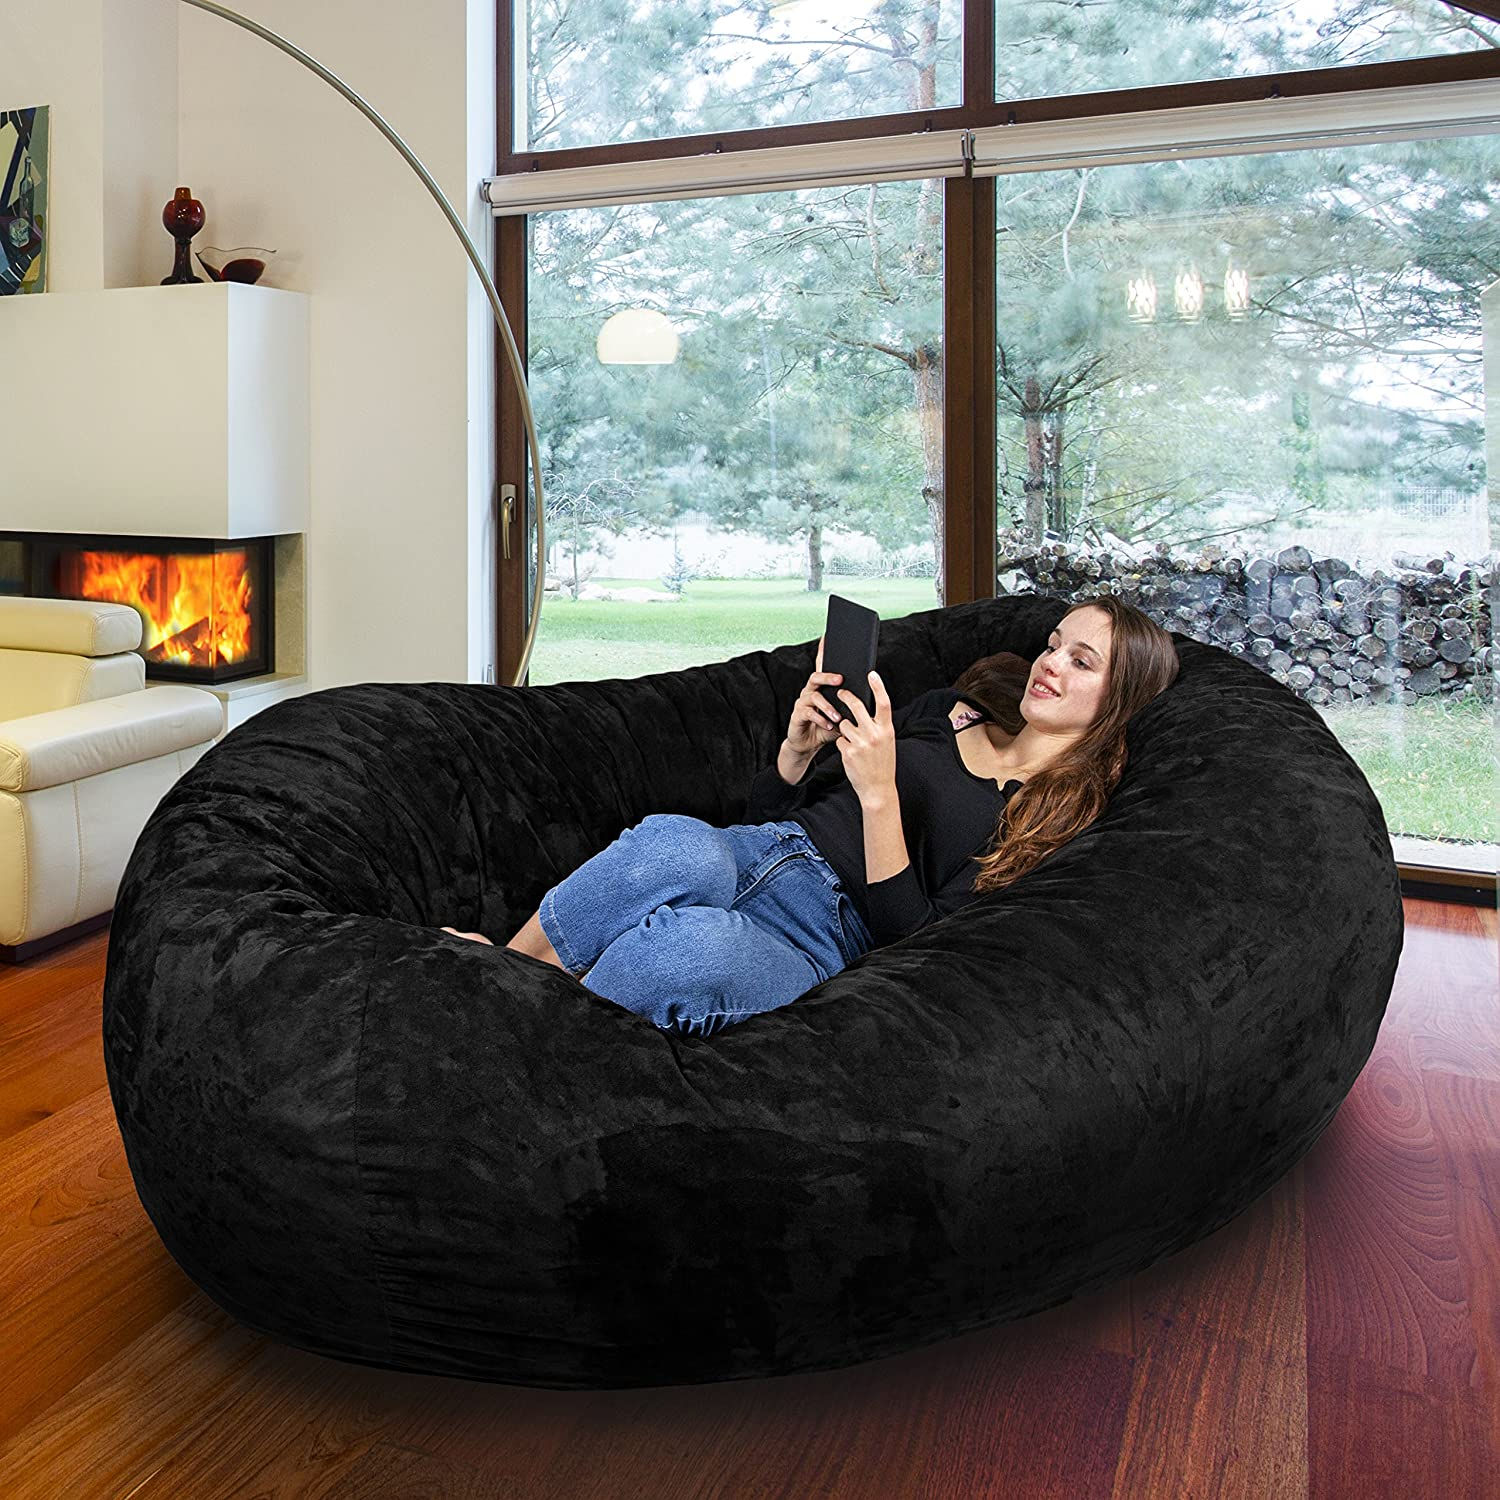 Amazon Gigantic Bean Bag Chair In Limo Black With Memory Foam Filling And Machine Washable Velour Cover Comfortable Cozy Lounge Sack To Chill